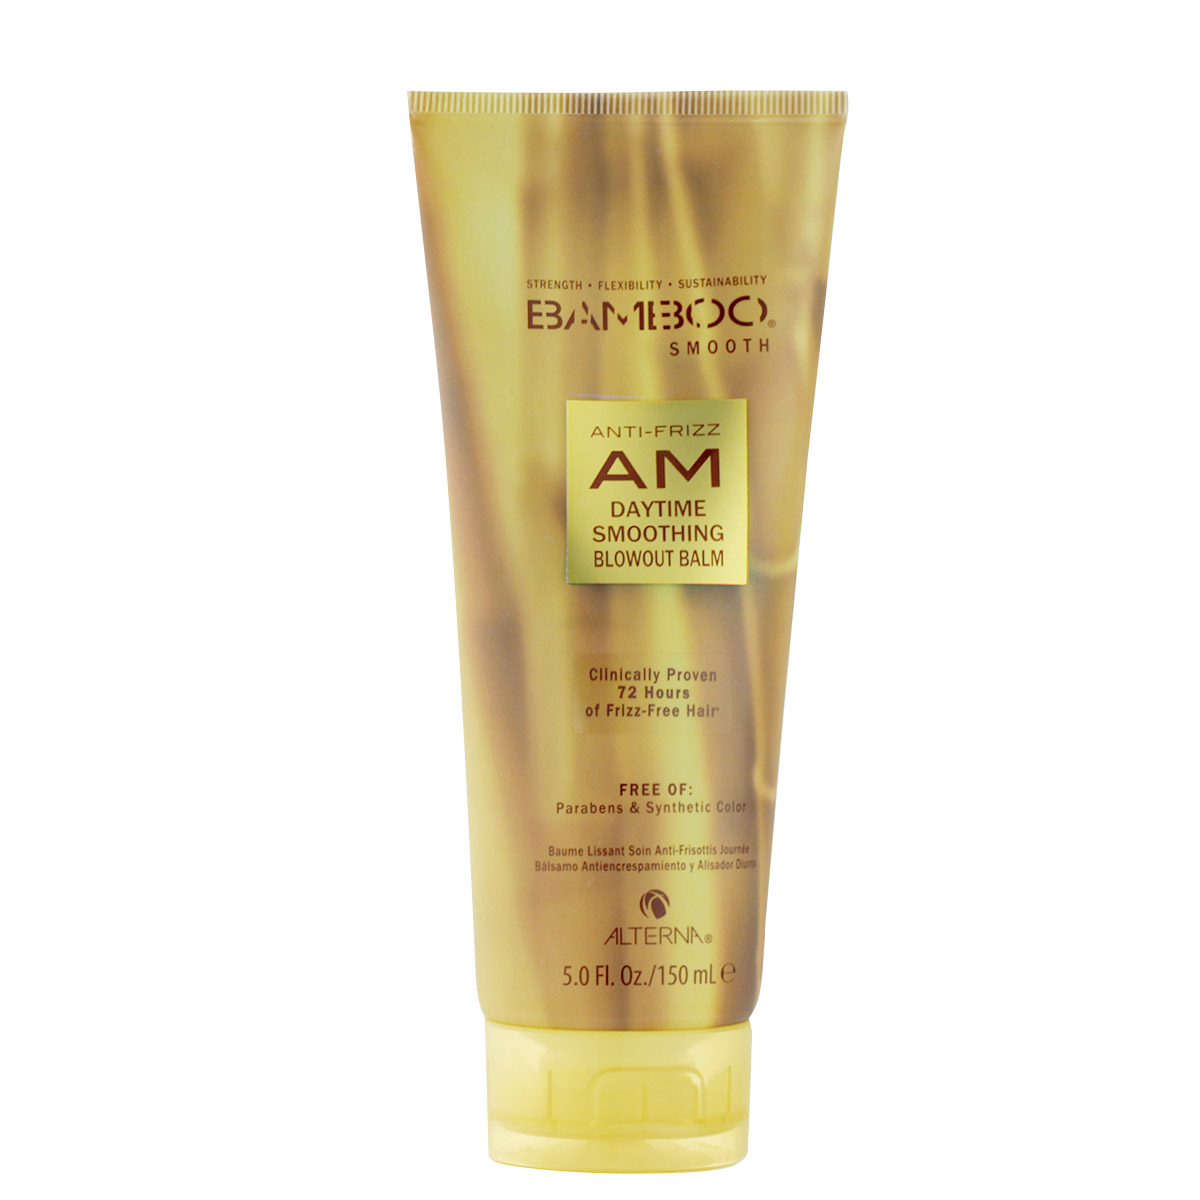 Alterna Bamboo Smooth Anti-Frizz AM Daytime Smoothing Blowout Balm 150 ml